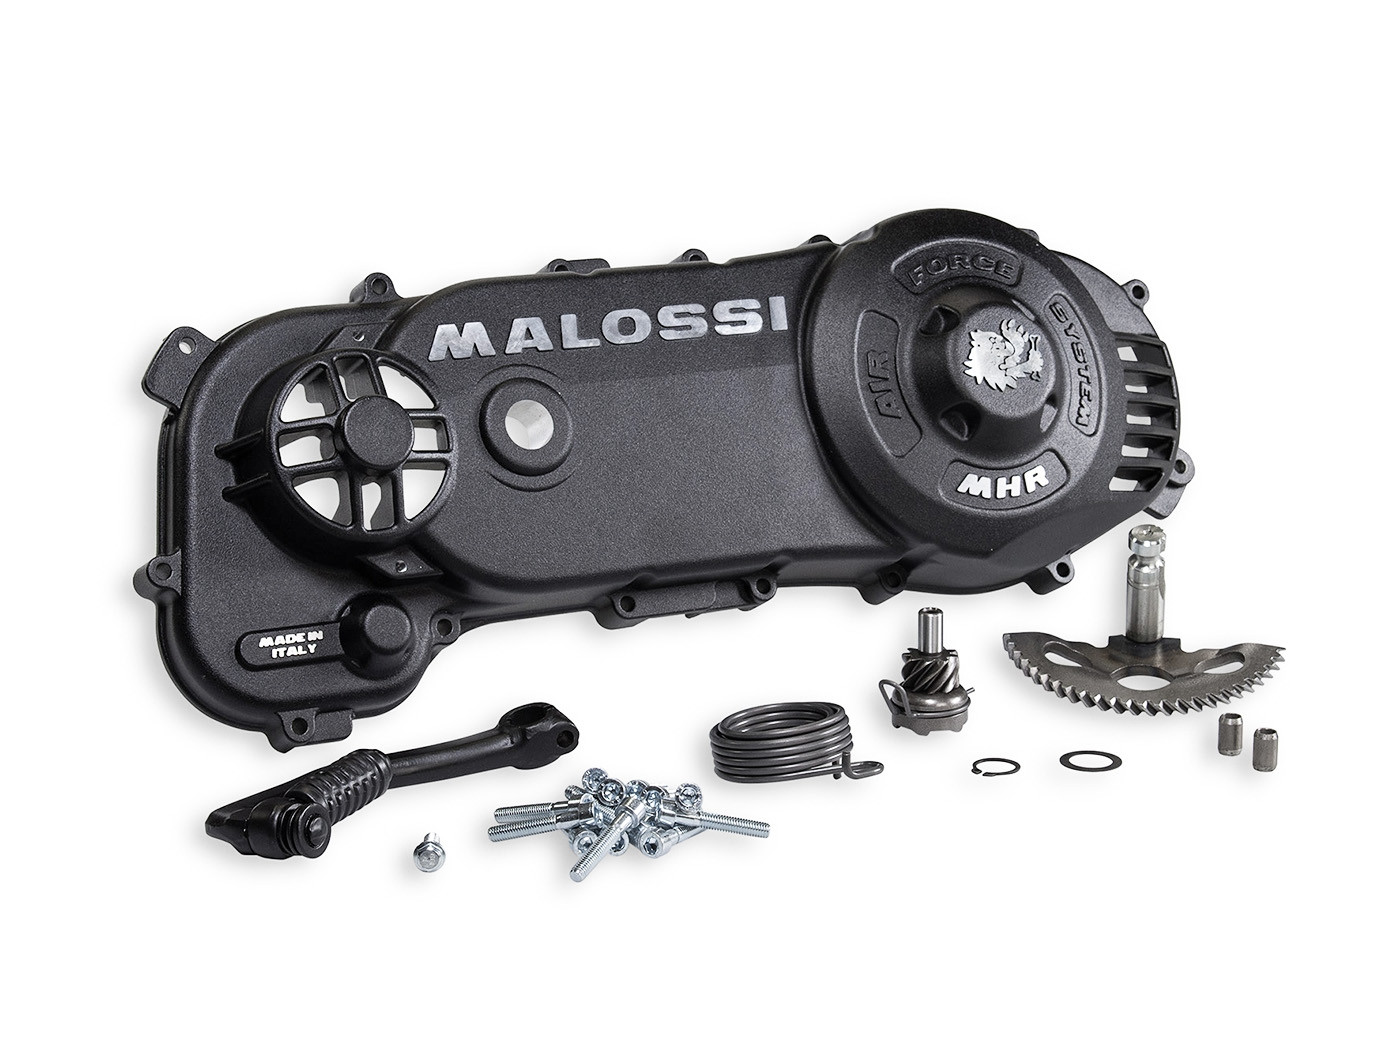 Carterkap Malossi MHR C-One / RC-One (5717218)